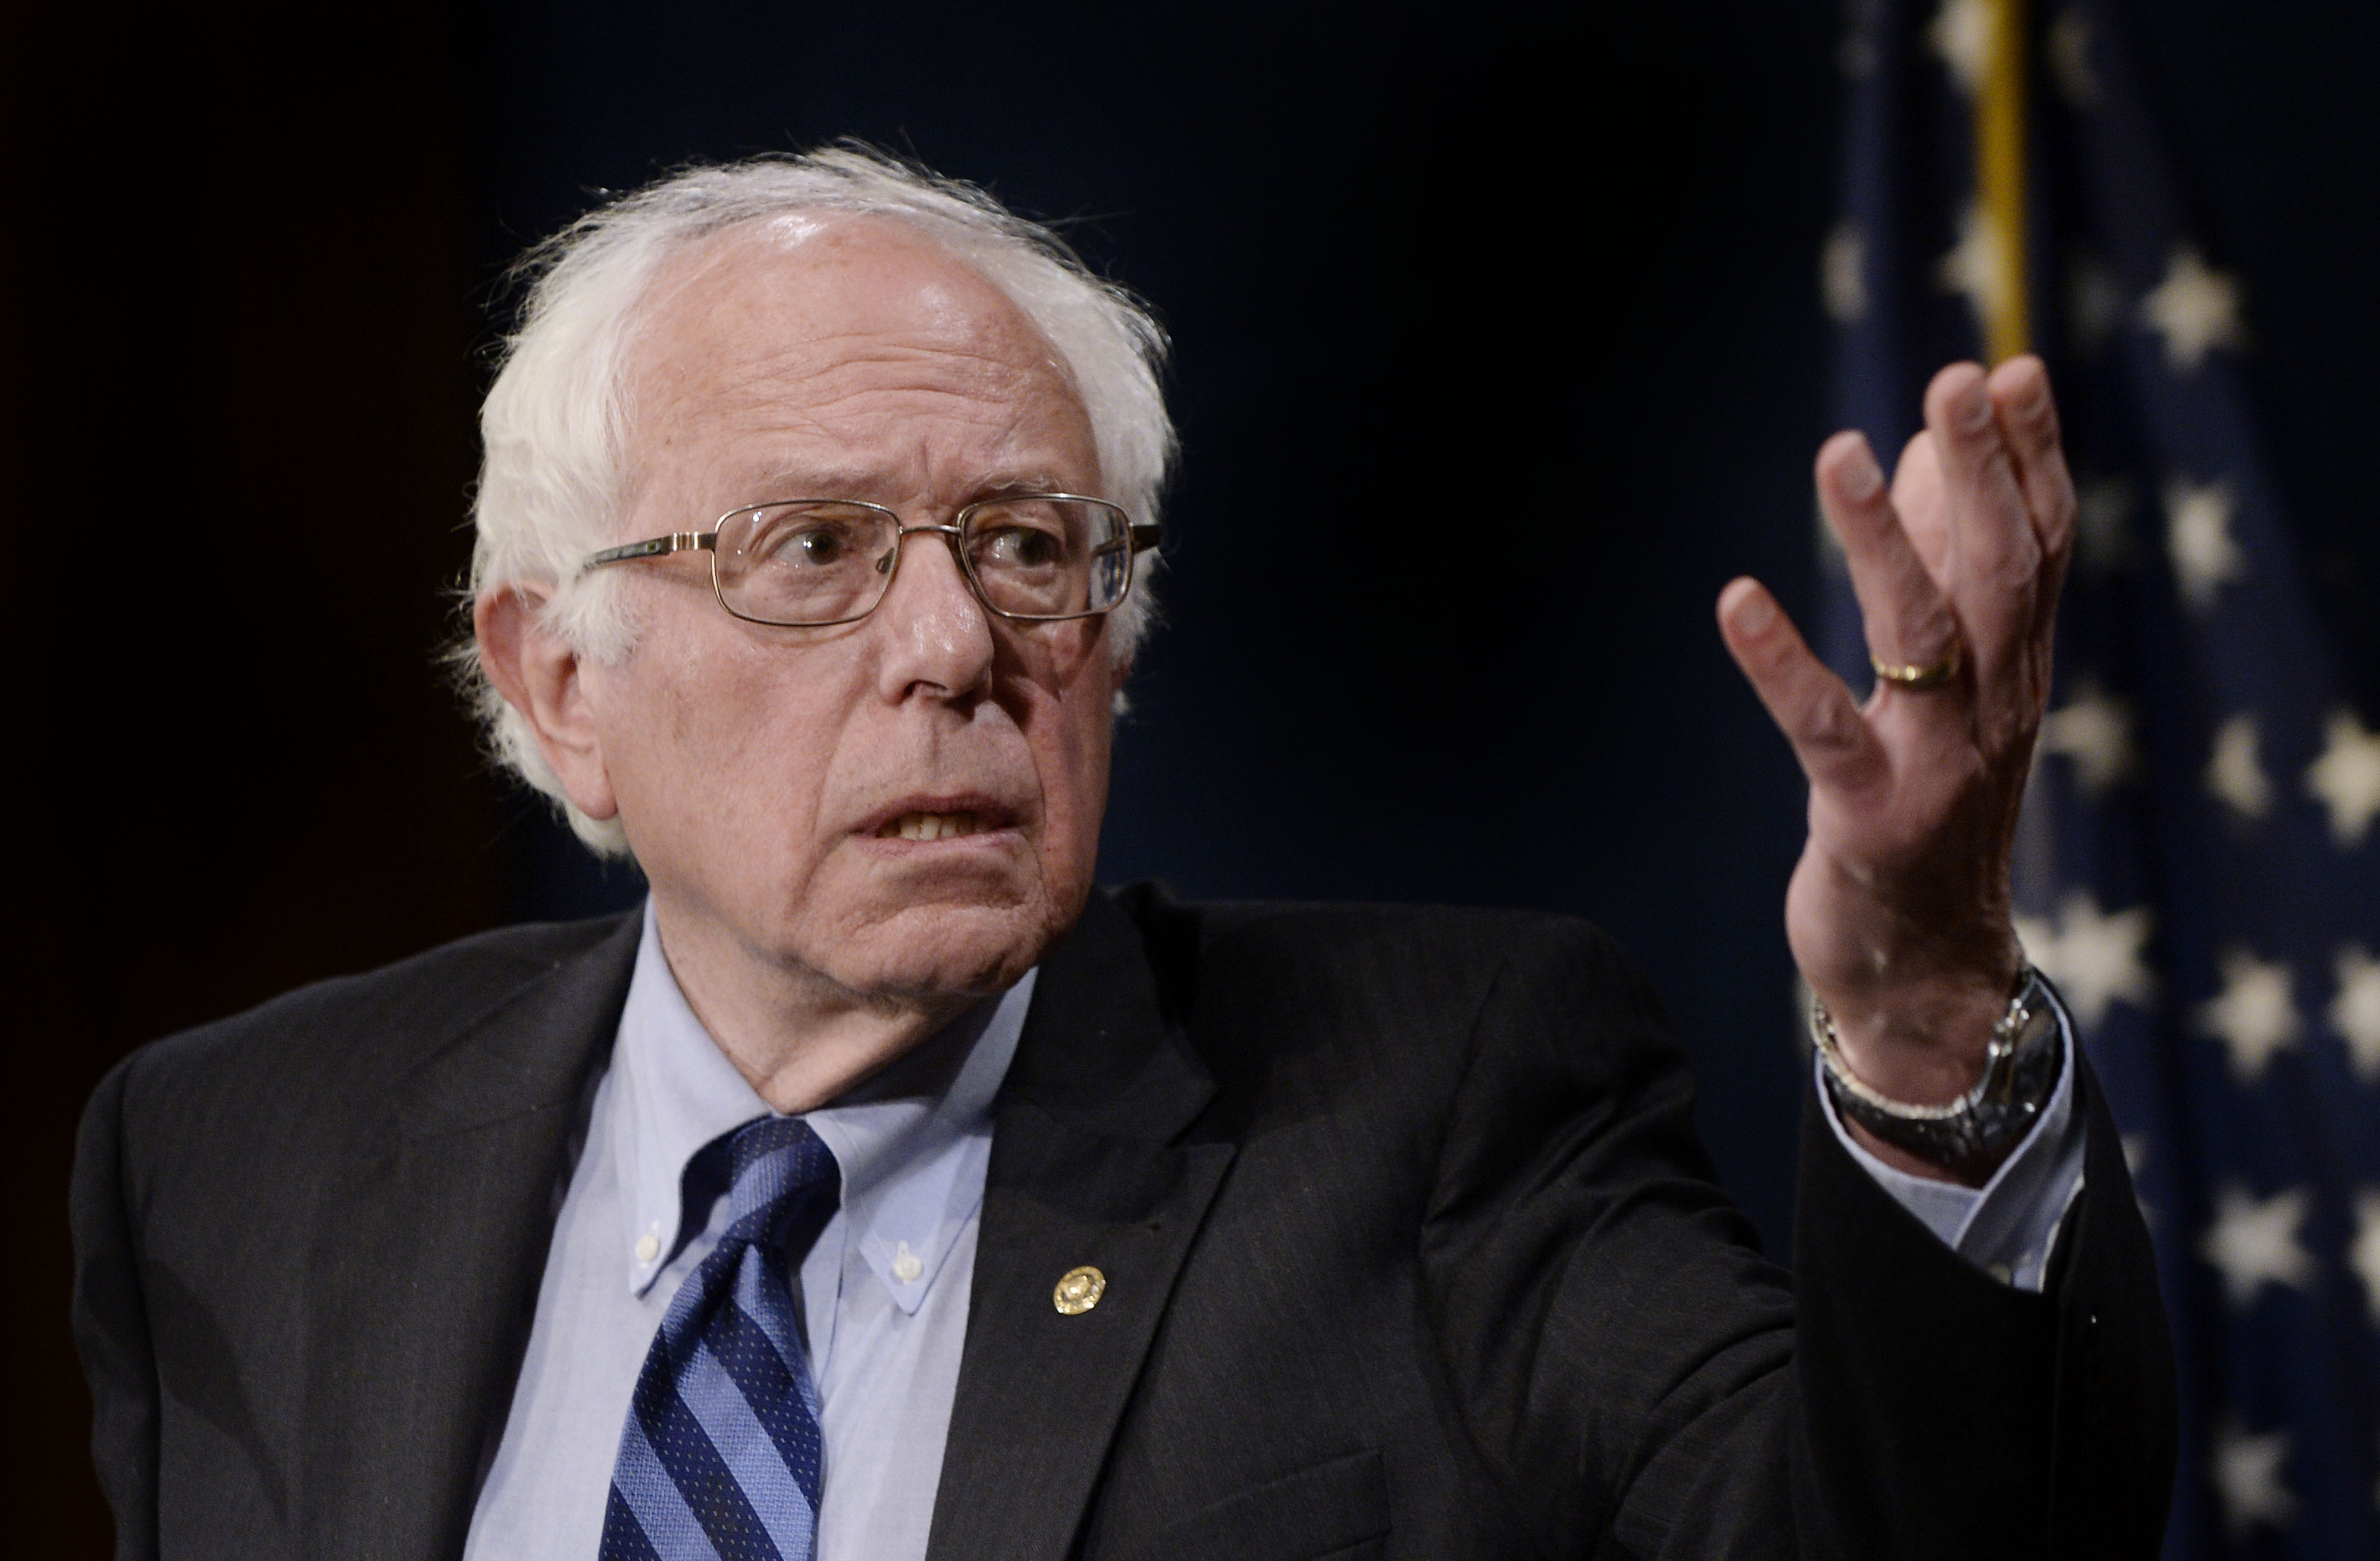 Bernie Sanders May Campaign Finance In The United